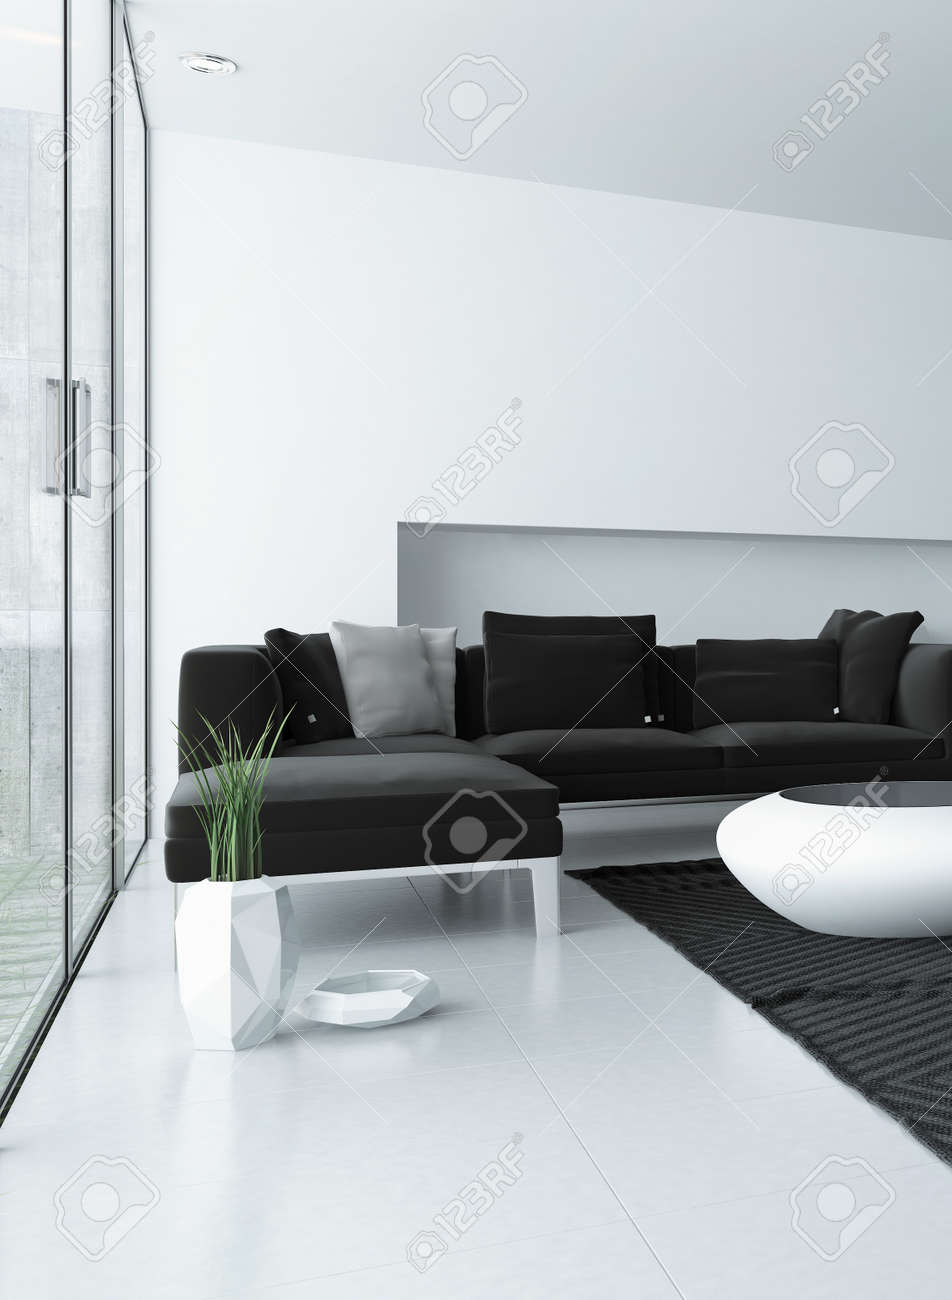 Modern Living Room With Grey And White Decor And A Corner Unit ...